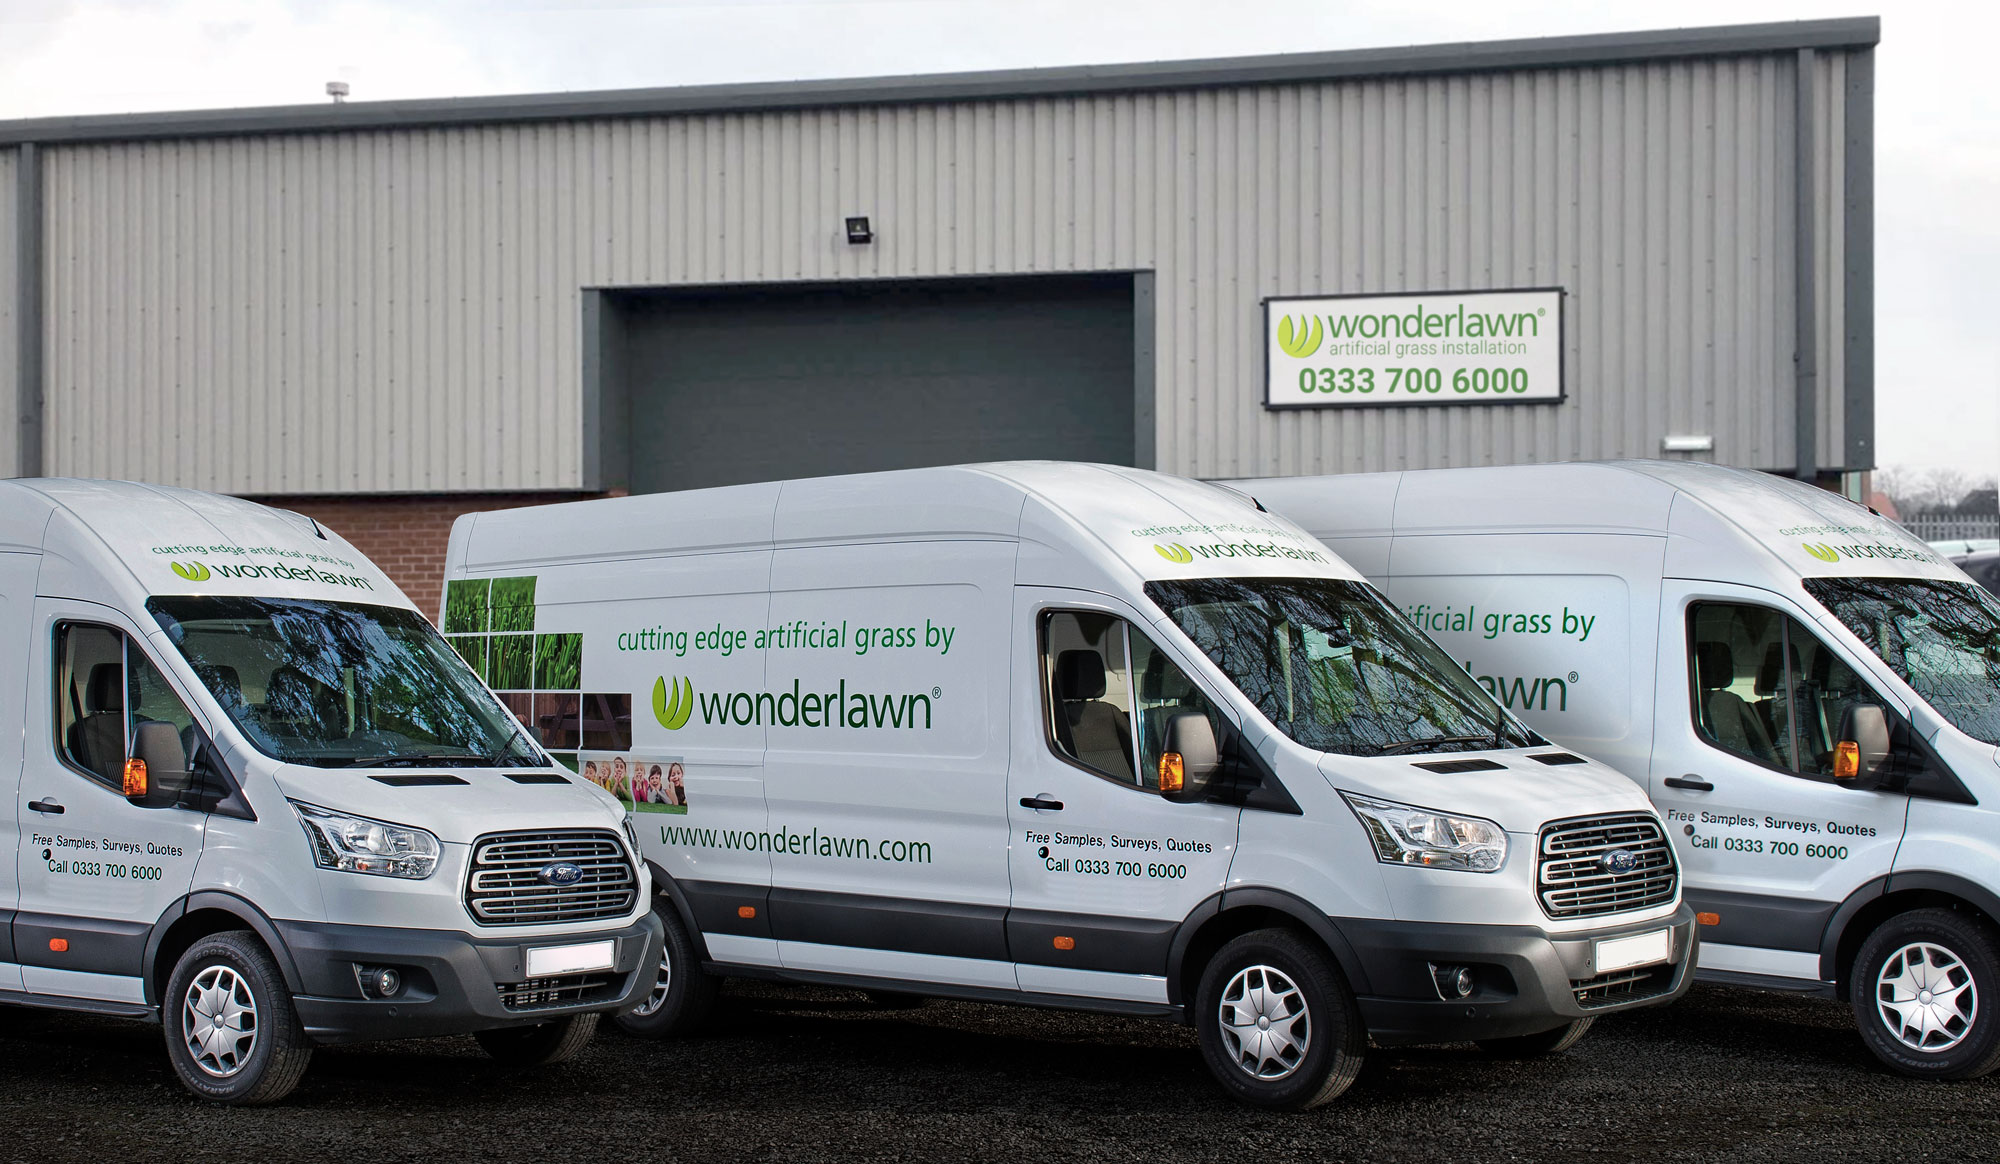 Wonderlawn franchise vans ready to deliver to franchisees